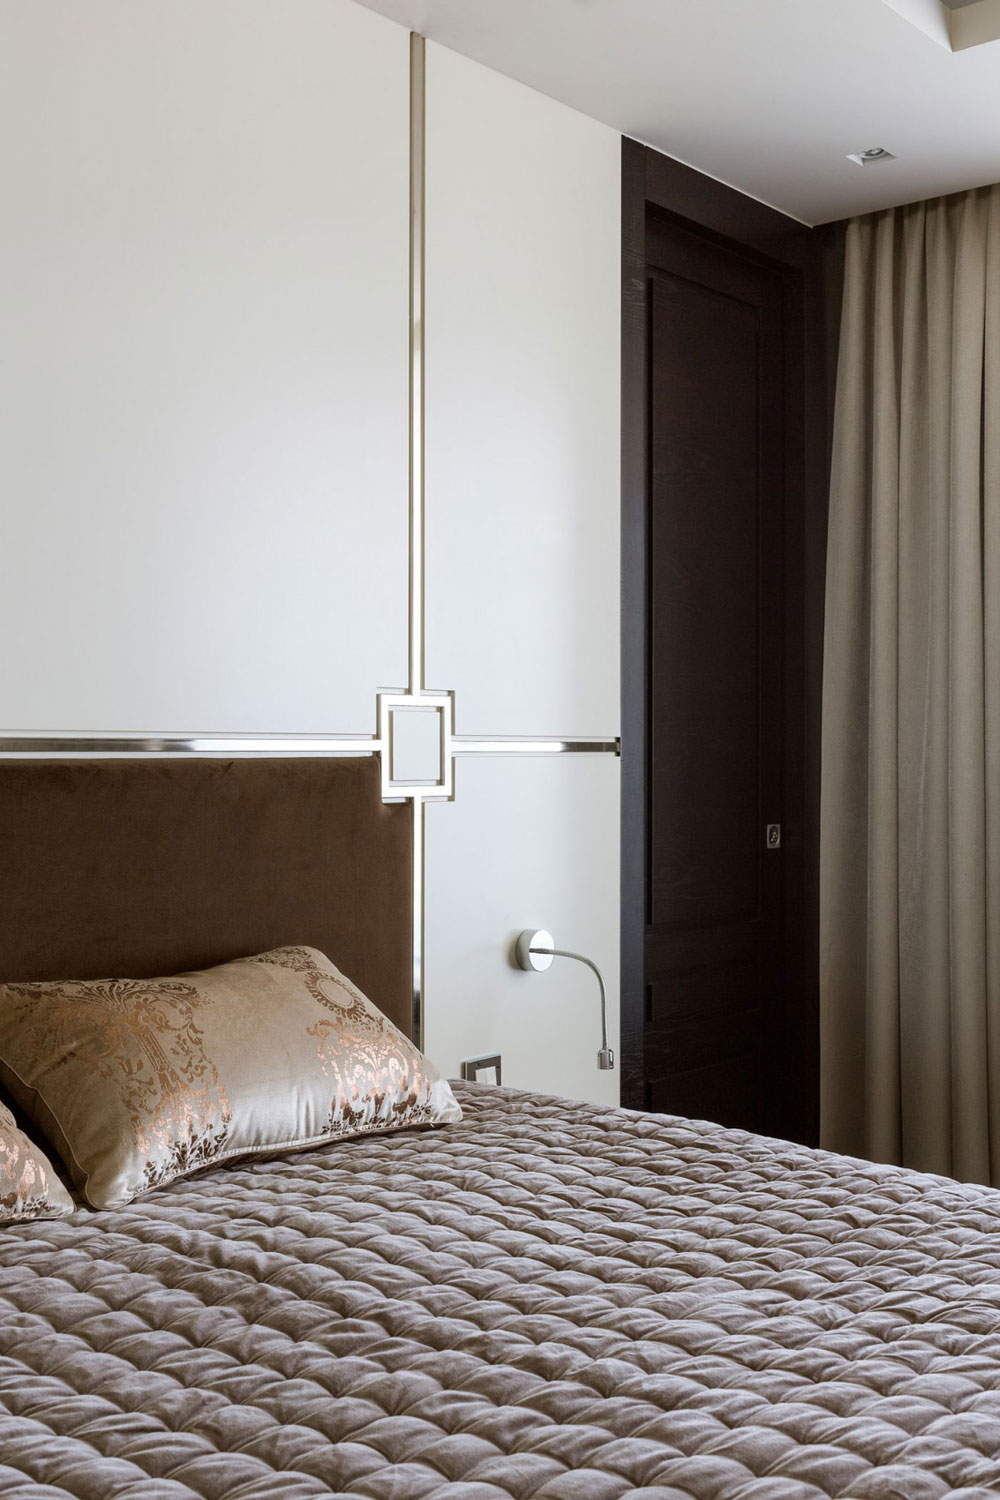 Apartment-with-the-look-and-feel-of-a-luxury-hotel-room-suite-10-Apartment-with-the-look-and-feel-of-a-luxury-hotel room-suite